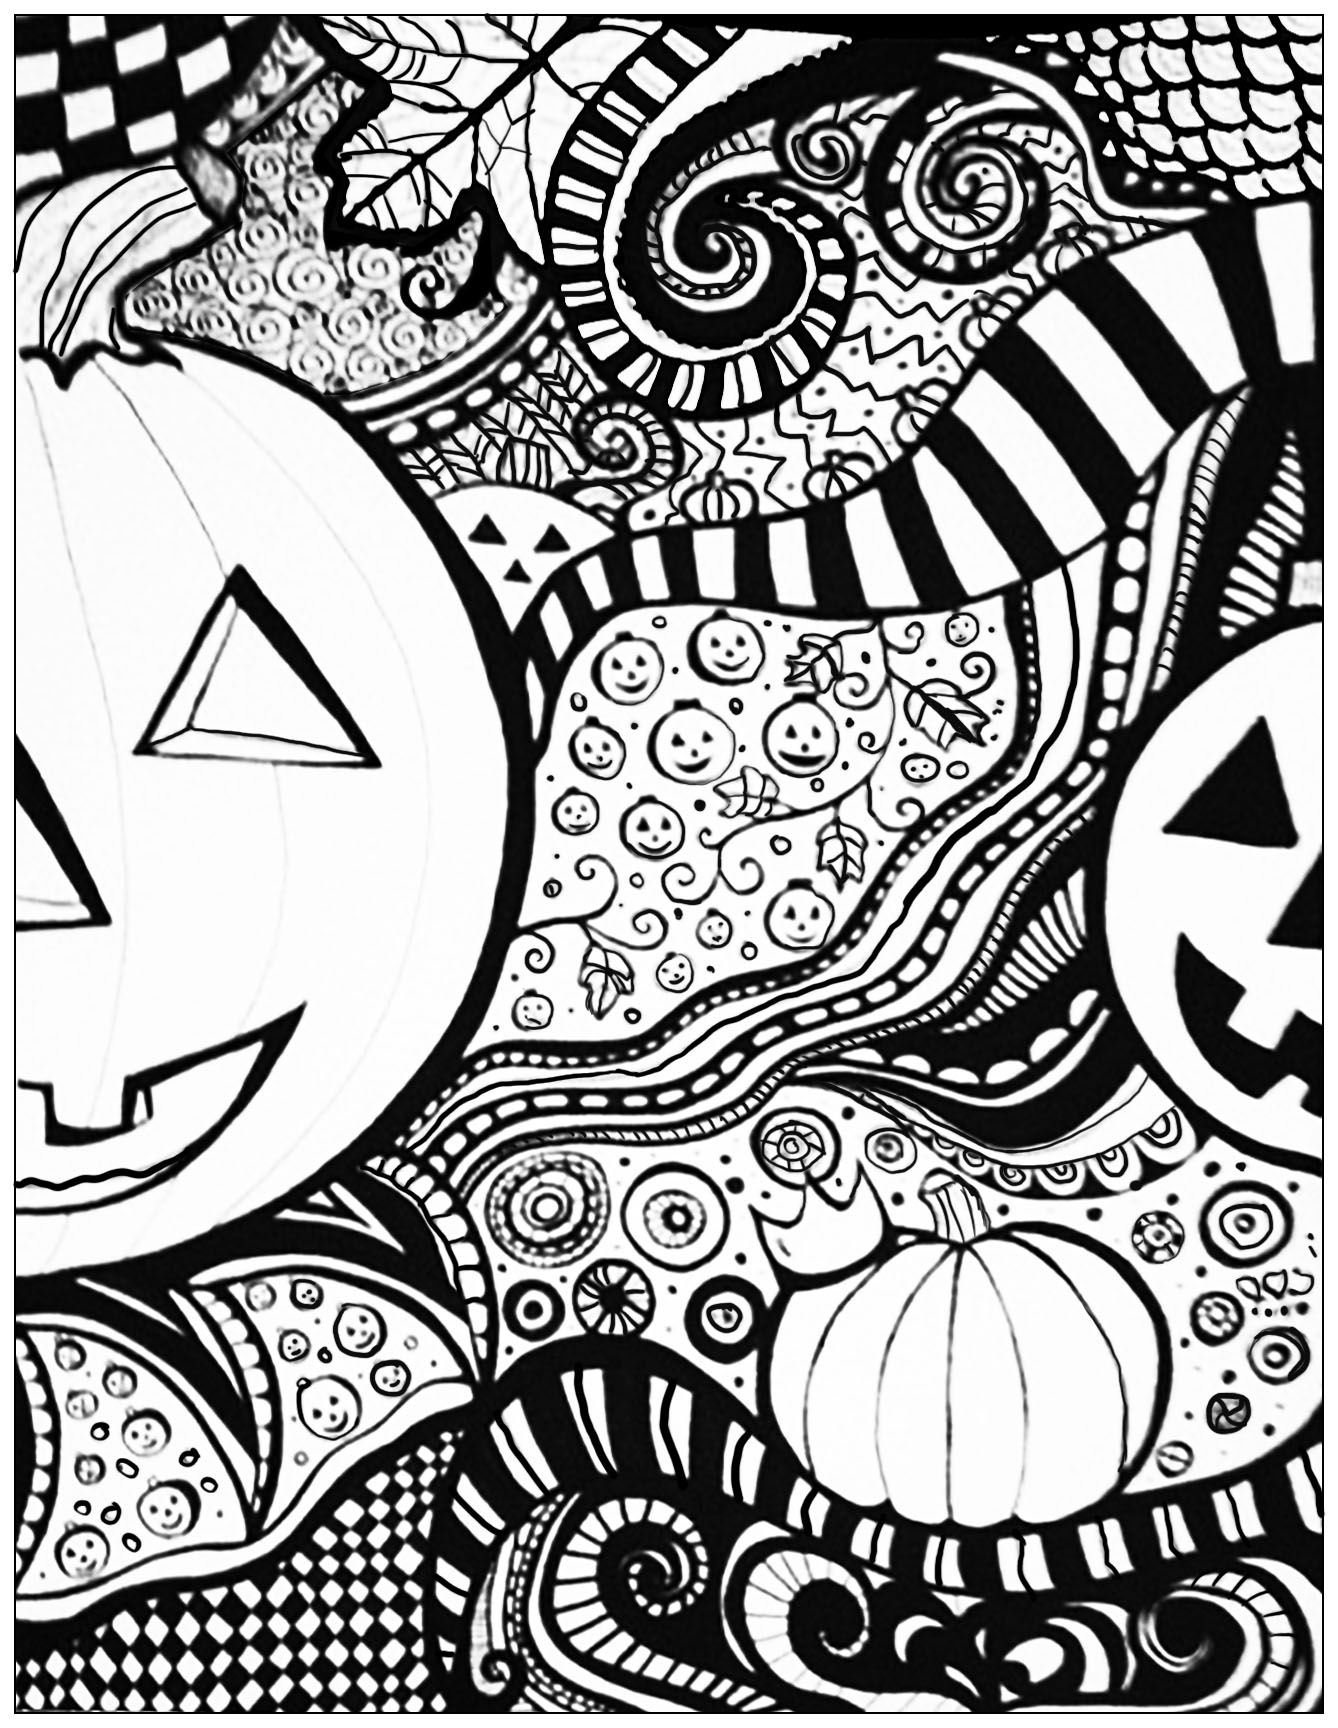 Coloring pages for halloween coloring contest - Halloween Drawing To Print Color With A Big Pumpkin From The Gallery